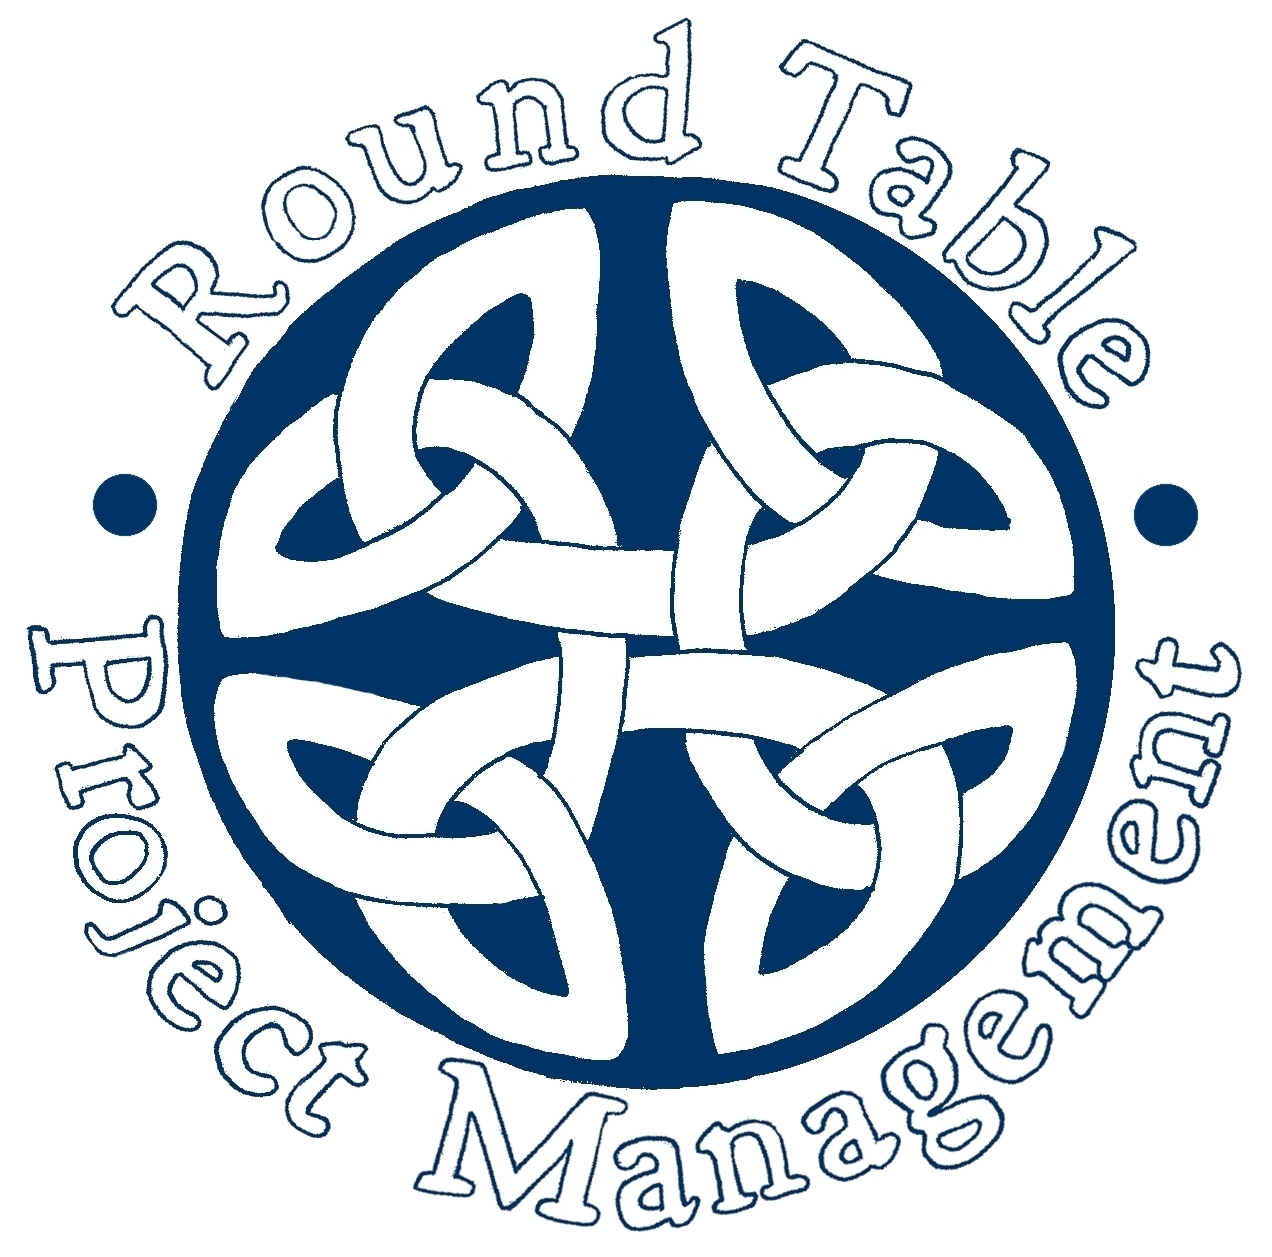 Round Table project management